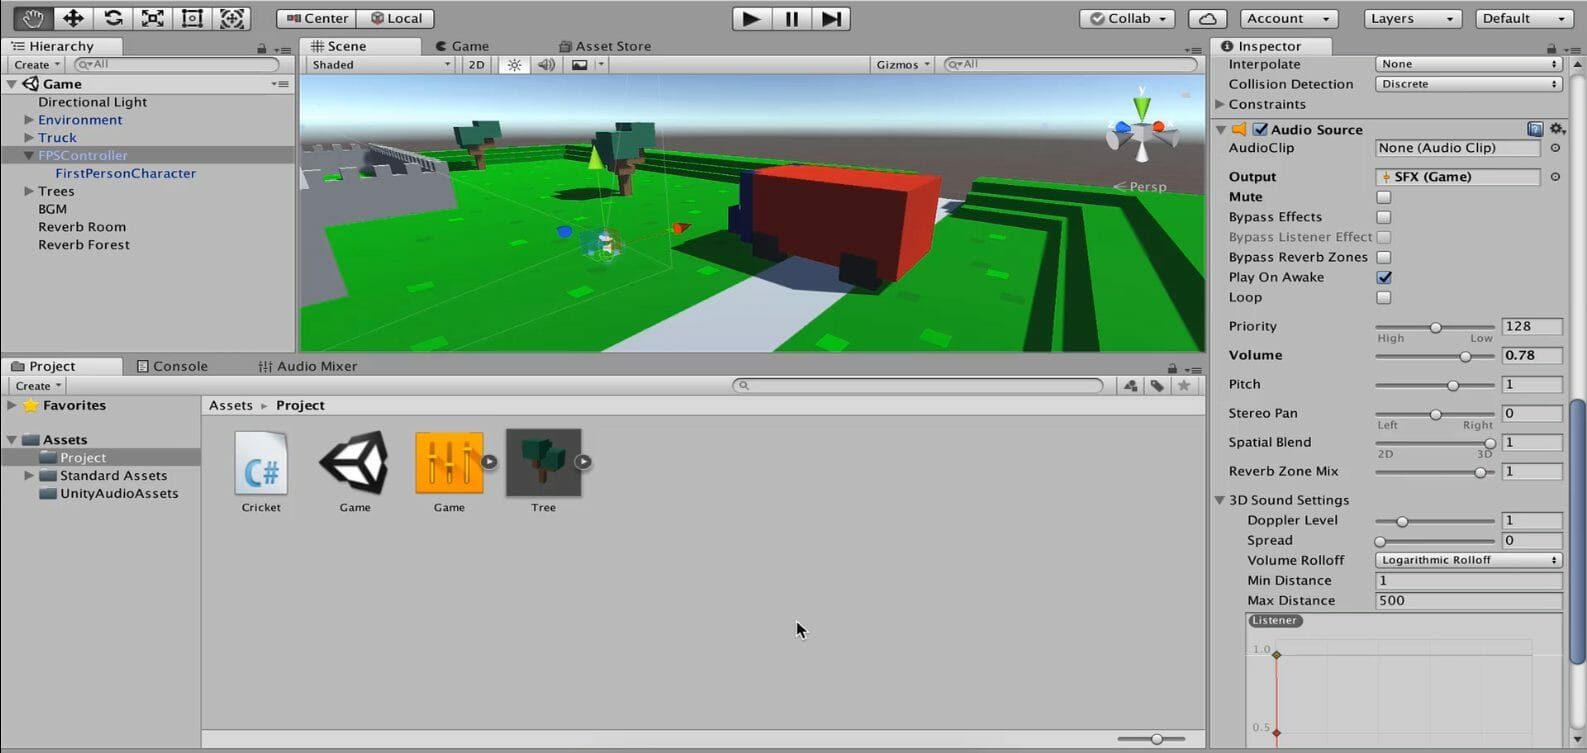 Screenshot of a Unity game engine project for an FPS experience